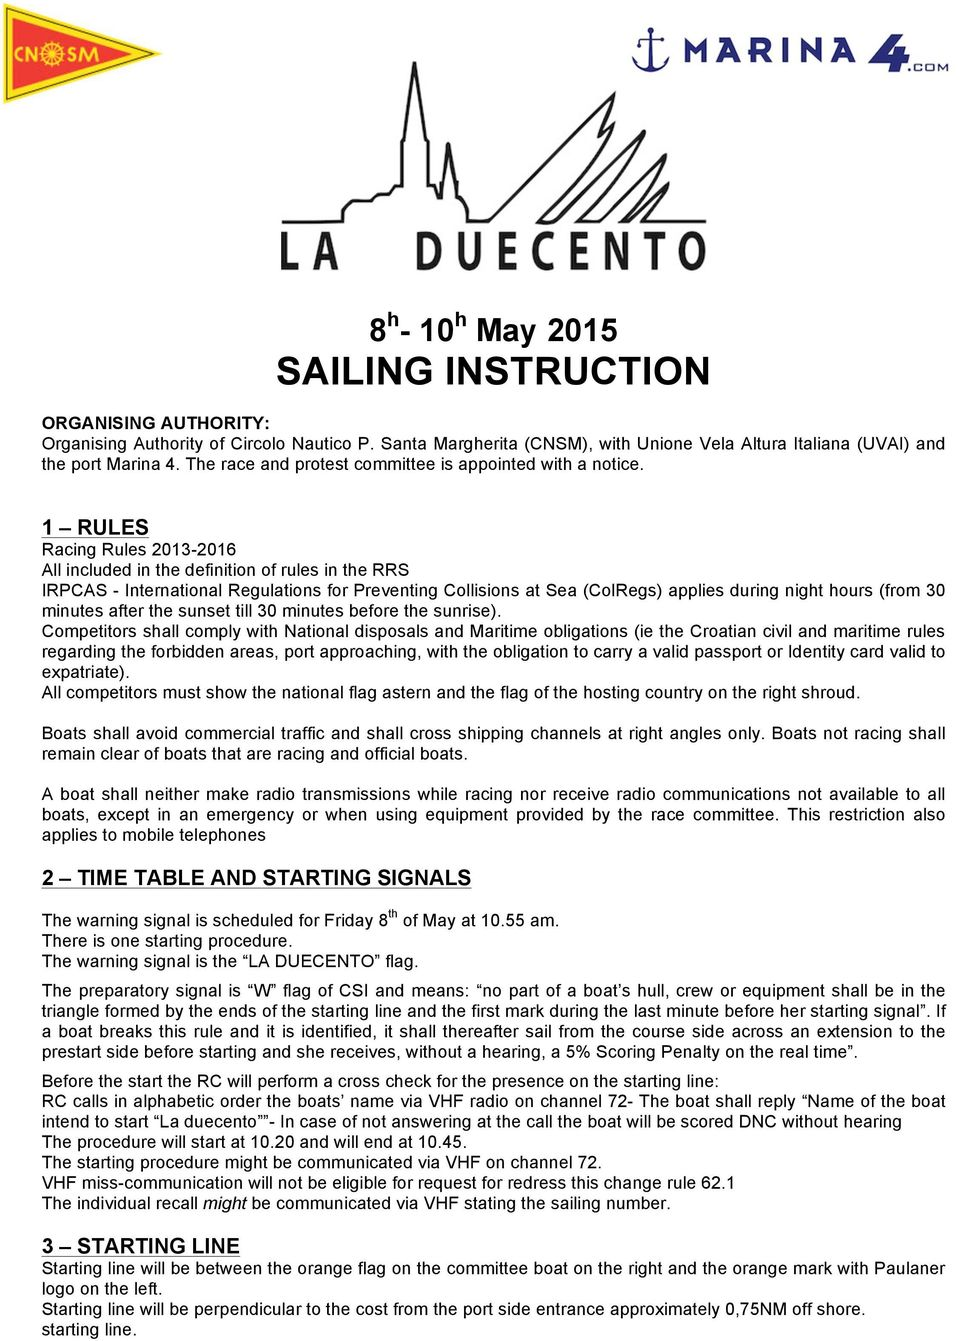 1 RULES Racing Rules 2013-2016 All included in the definition of rules in the RRS IRPCAS - International Regulations for Preventing Collisions at Sea (ColRegs) applies during night hours (from 30